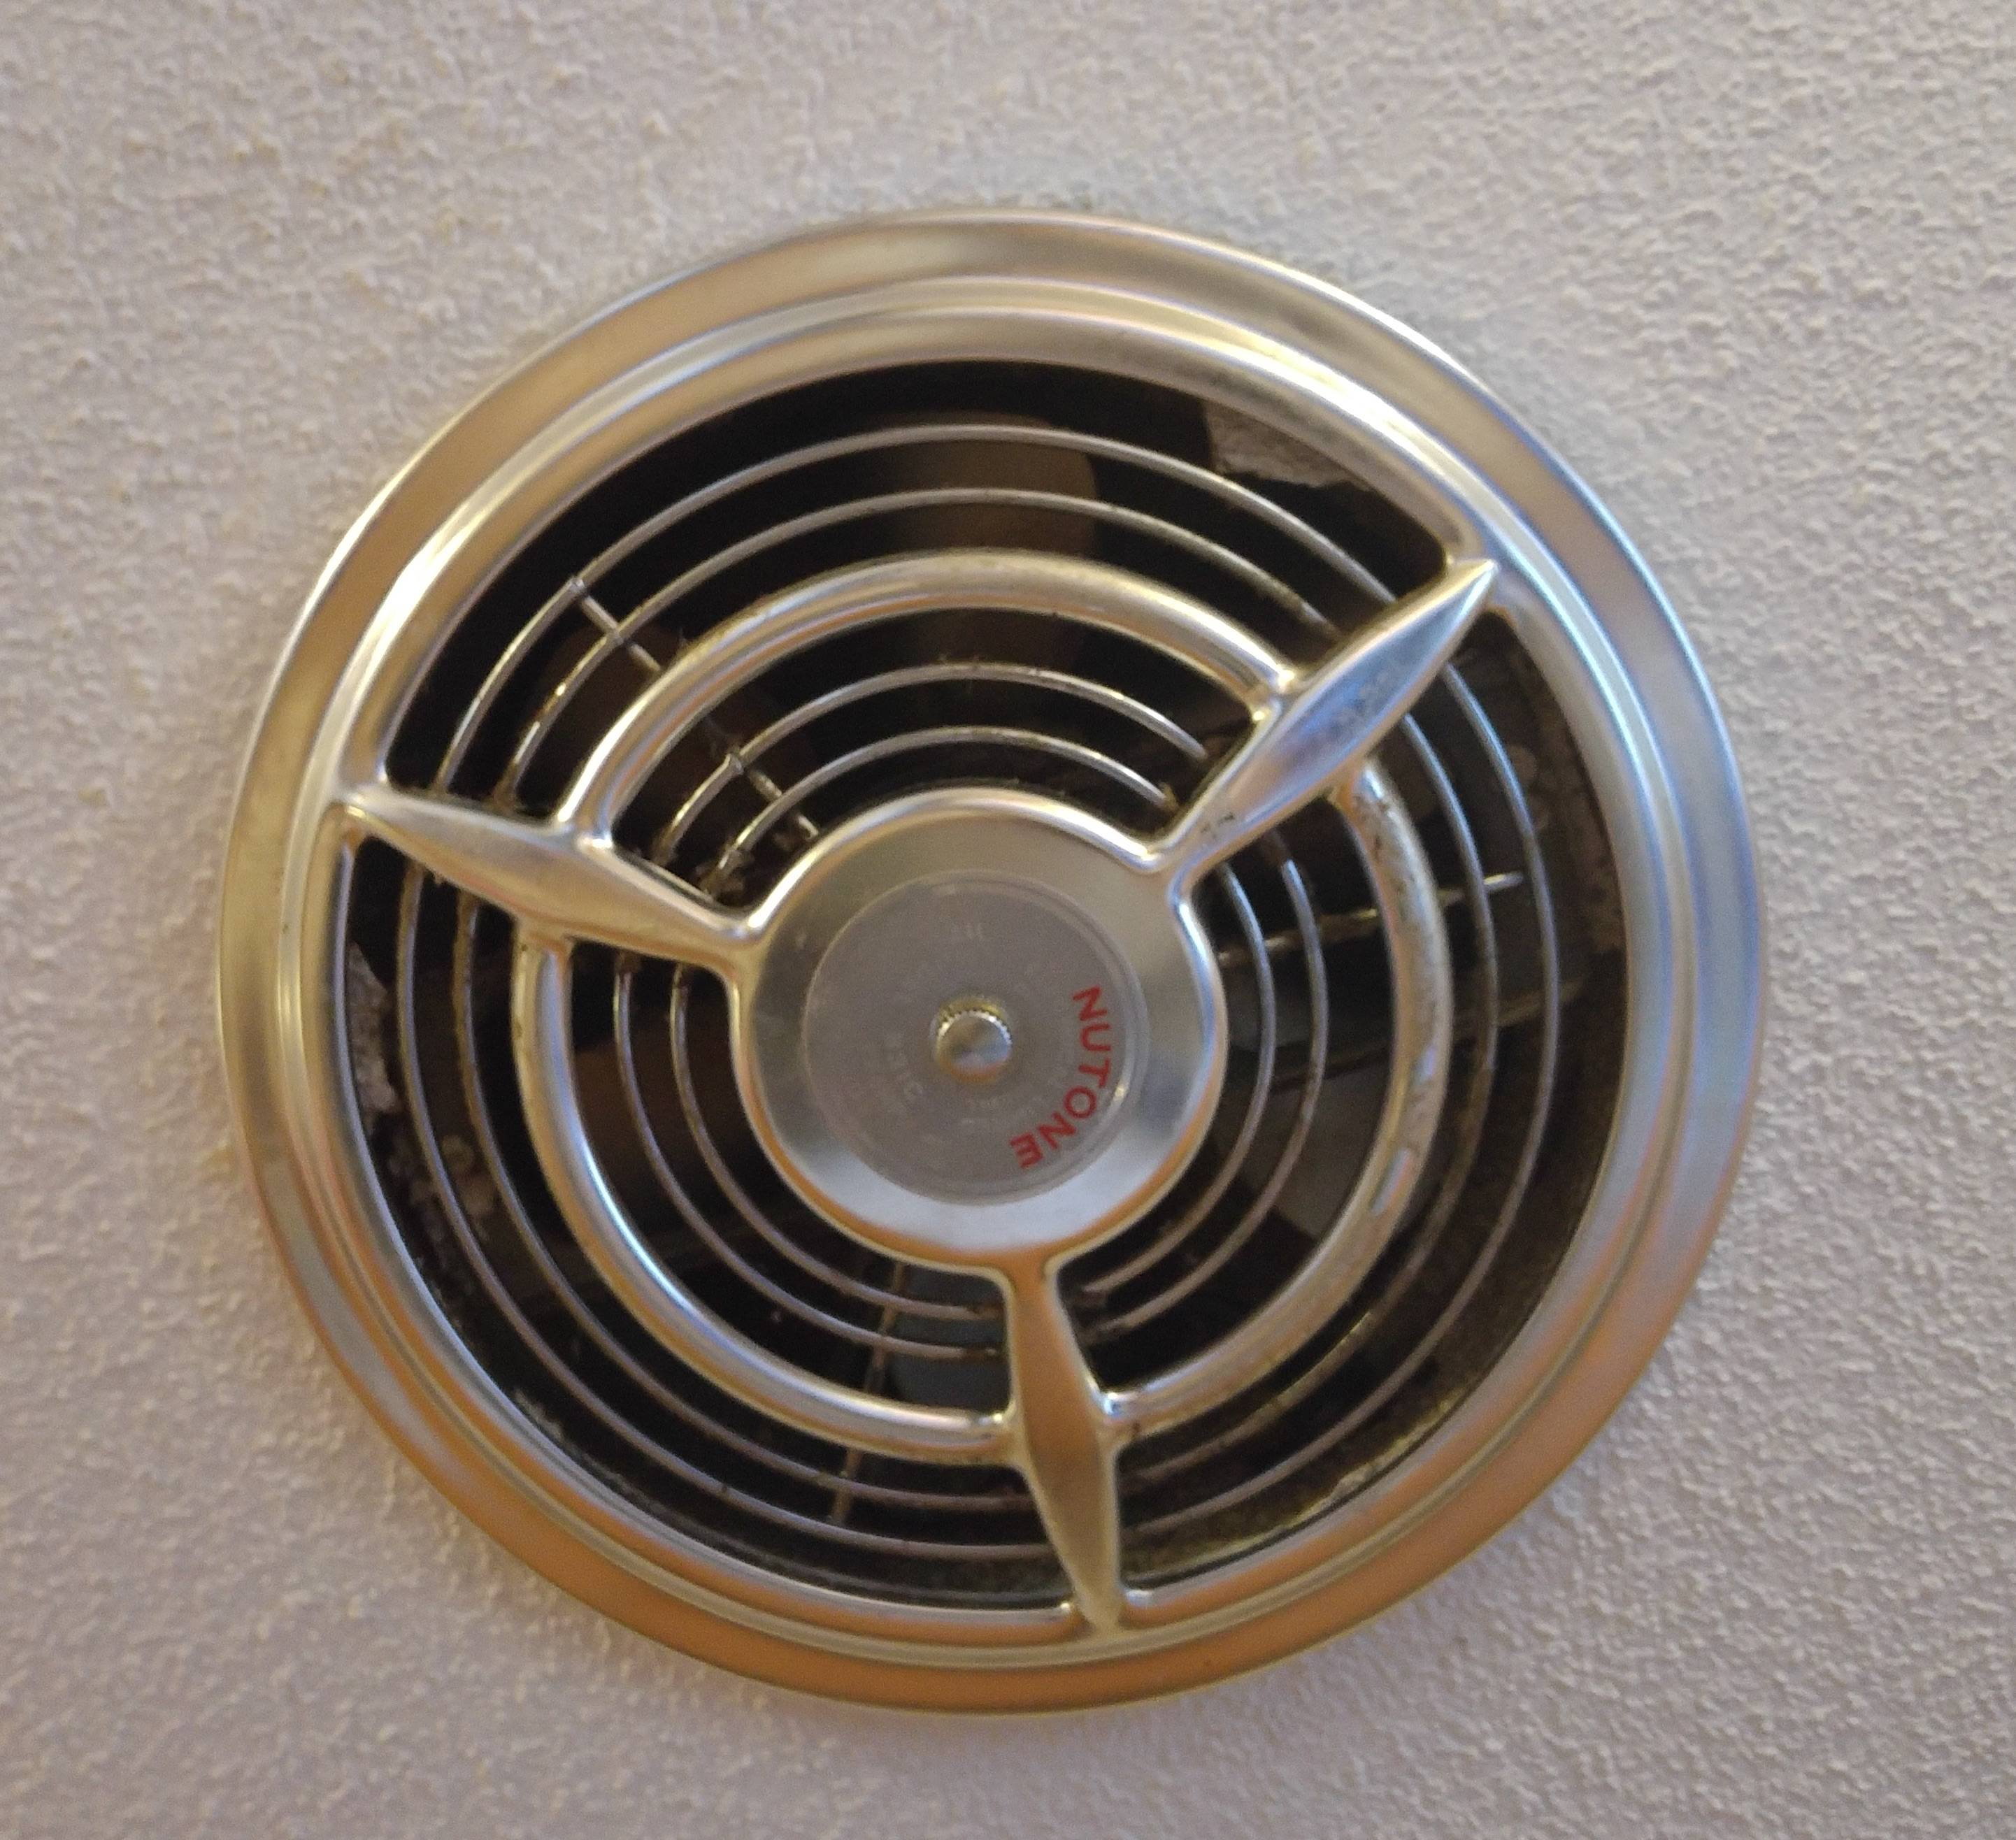 I have a similar exhaust fan in the kitchen enter image description here